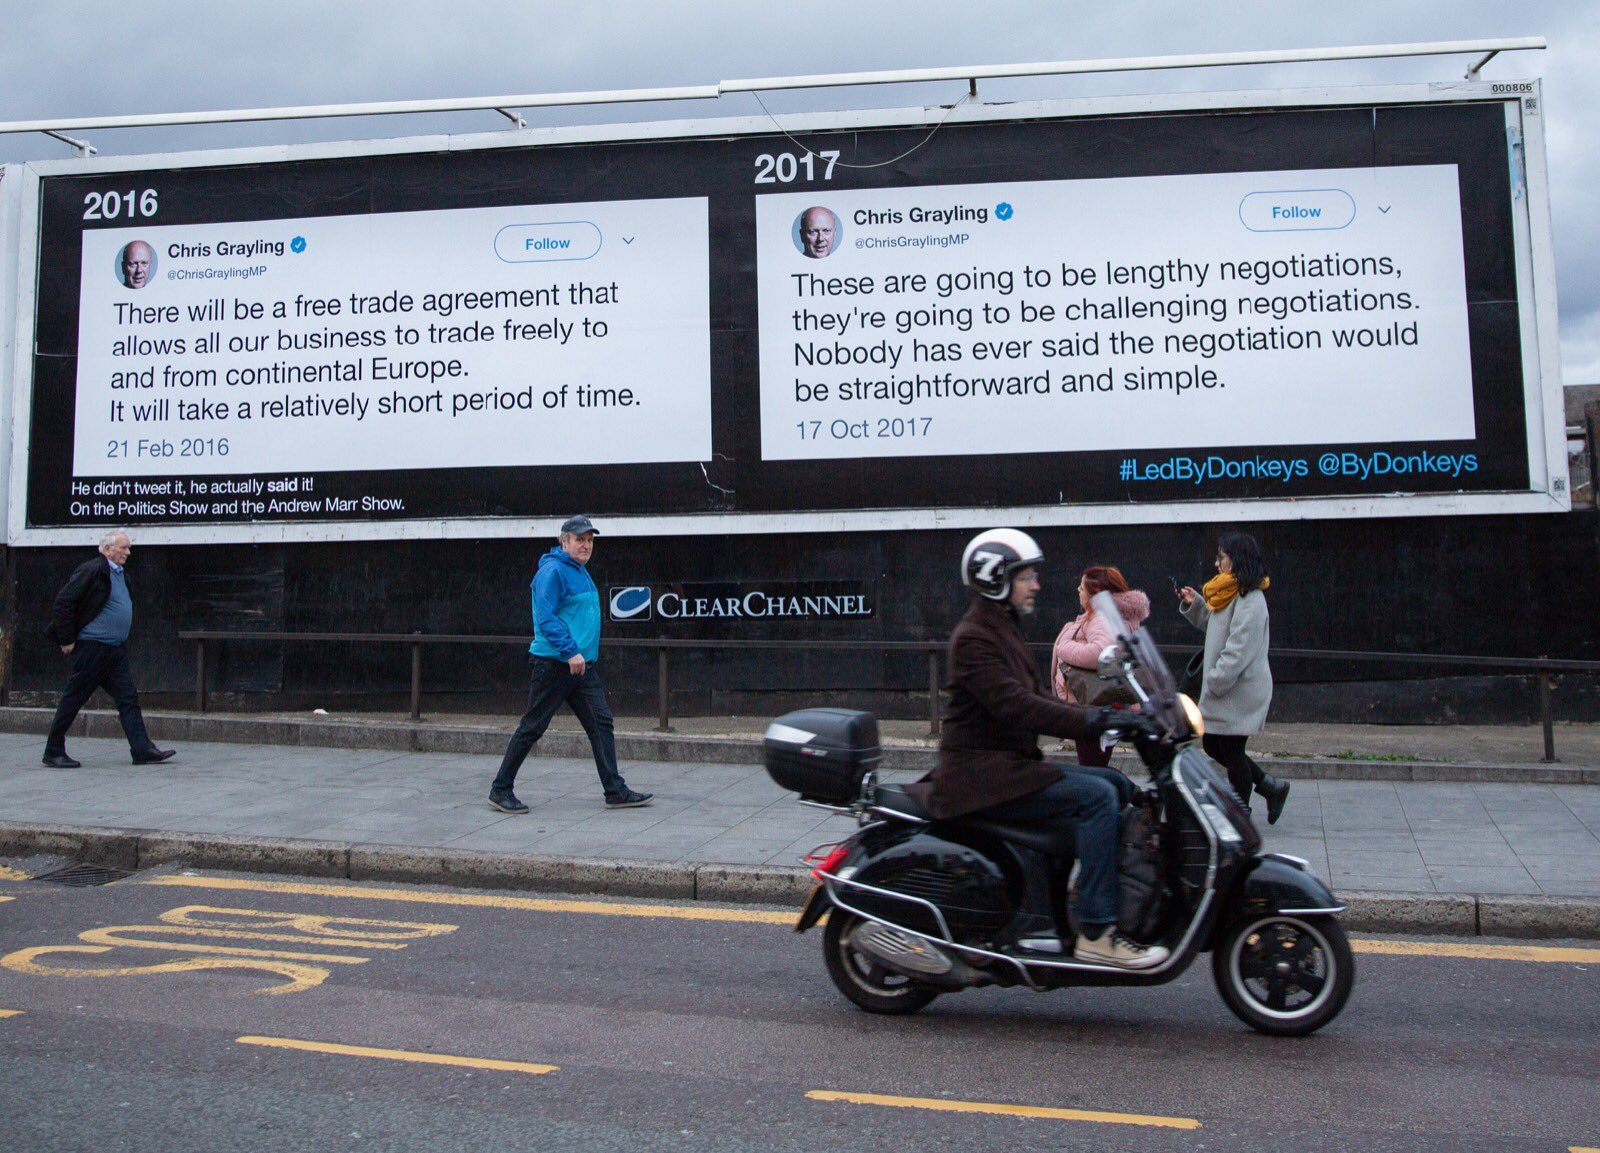 Image of two contradictory quotes by Chris Grayling posted to a billboard